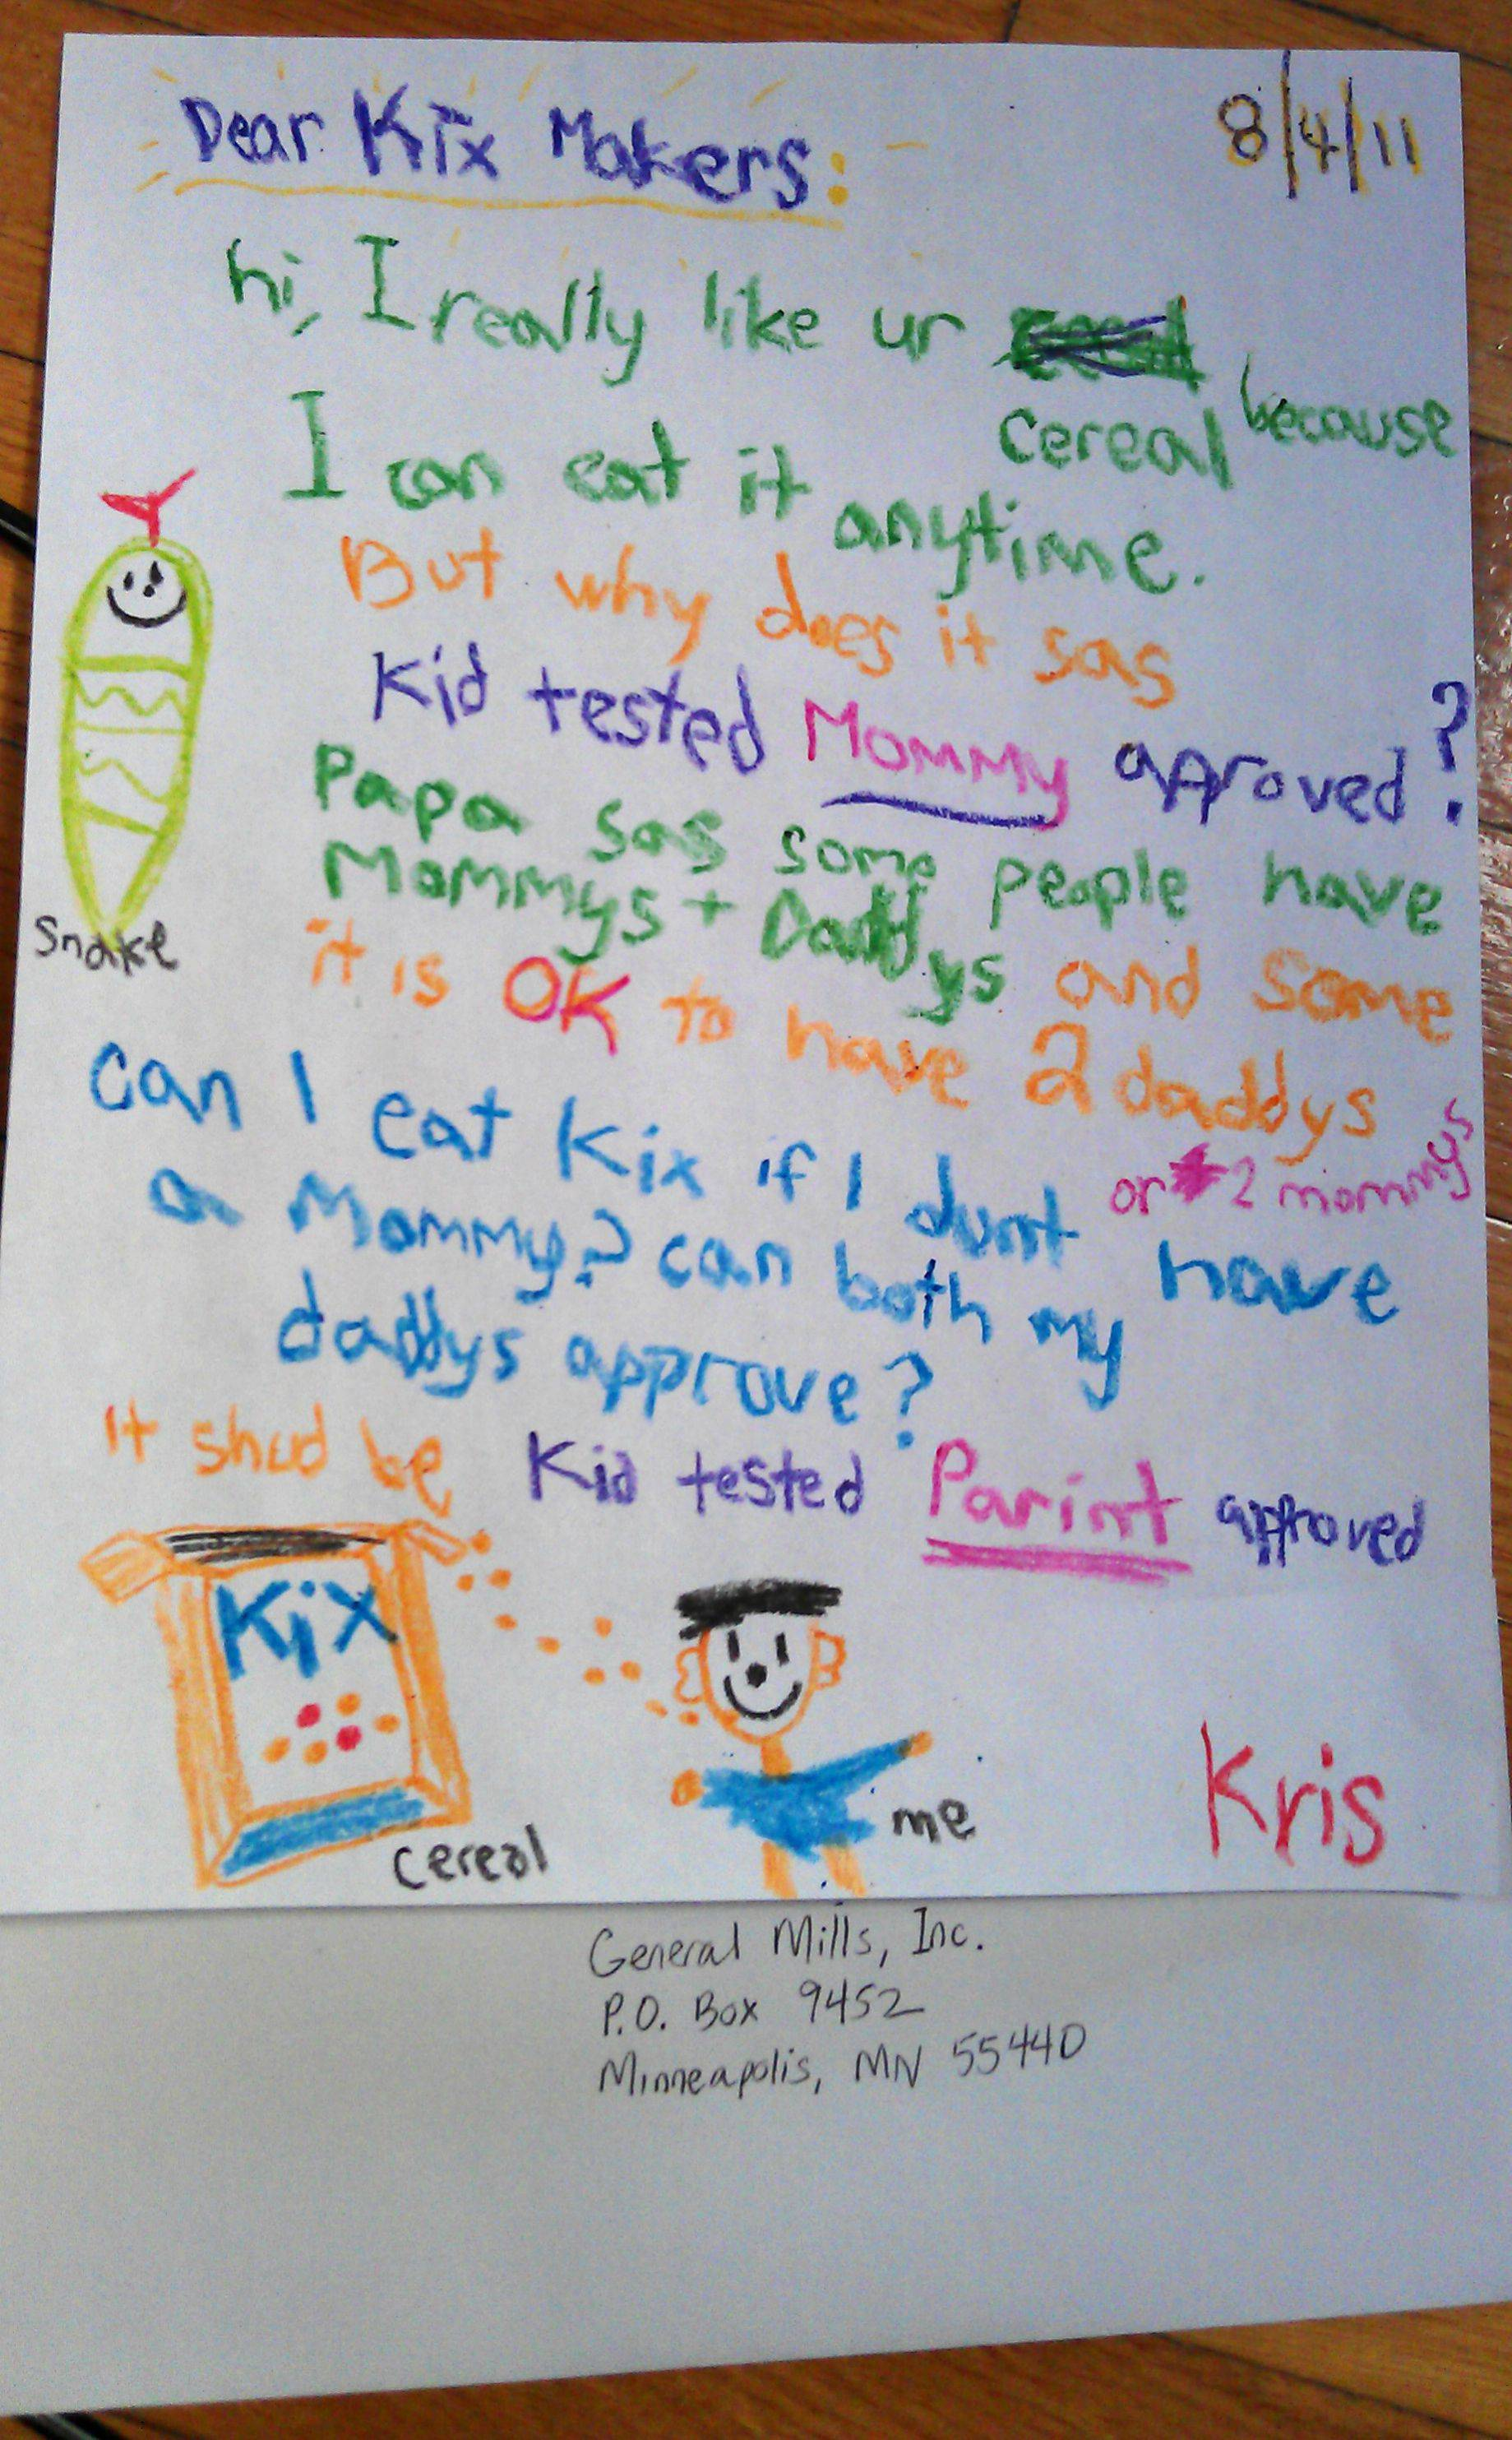 Child With Gay Dads Writes To KIX: Why Does It Have To Say MOTHER Approved?